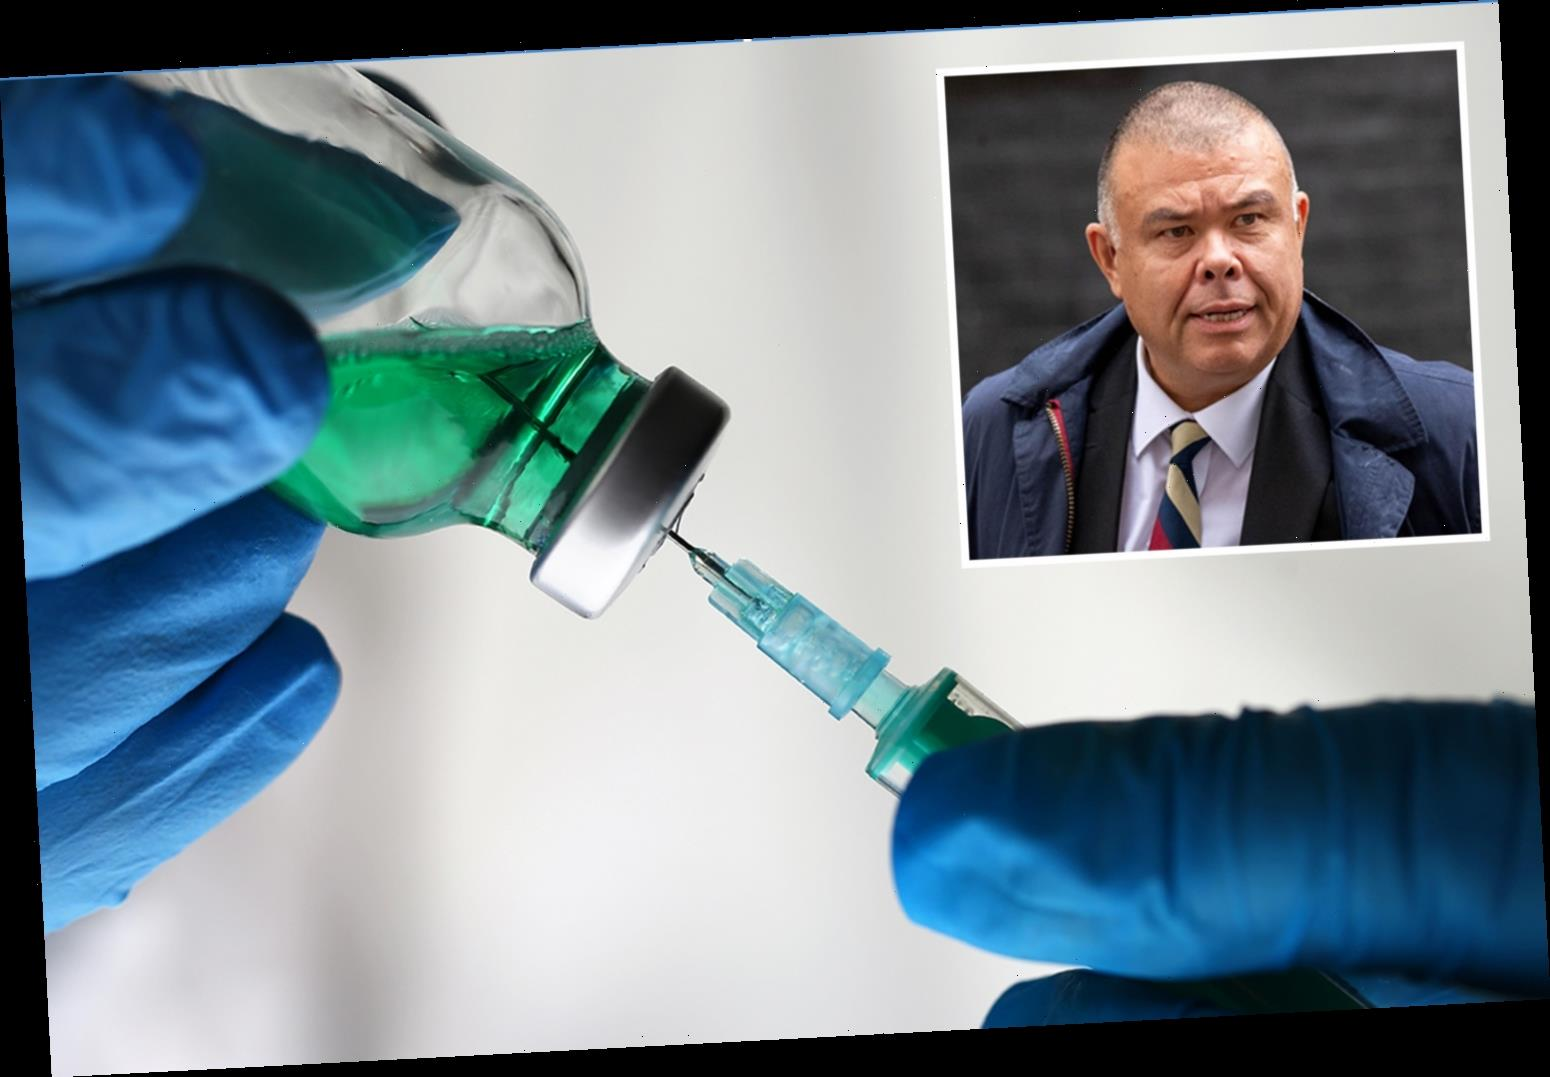 Covid vaccine 'could launch shortly after Christmas' as thousands of NHS staff to be trained to give jab